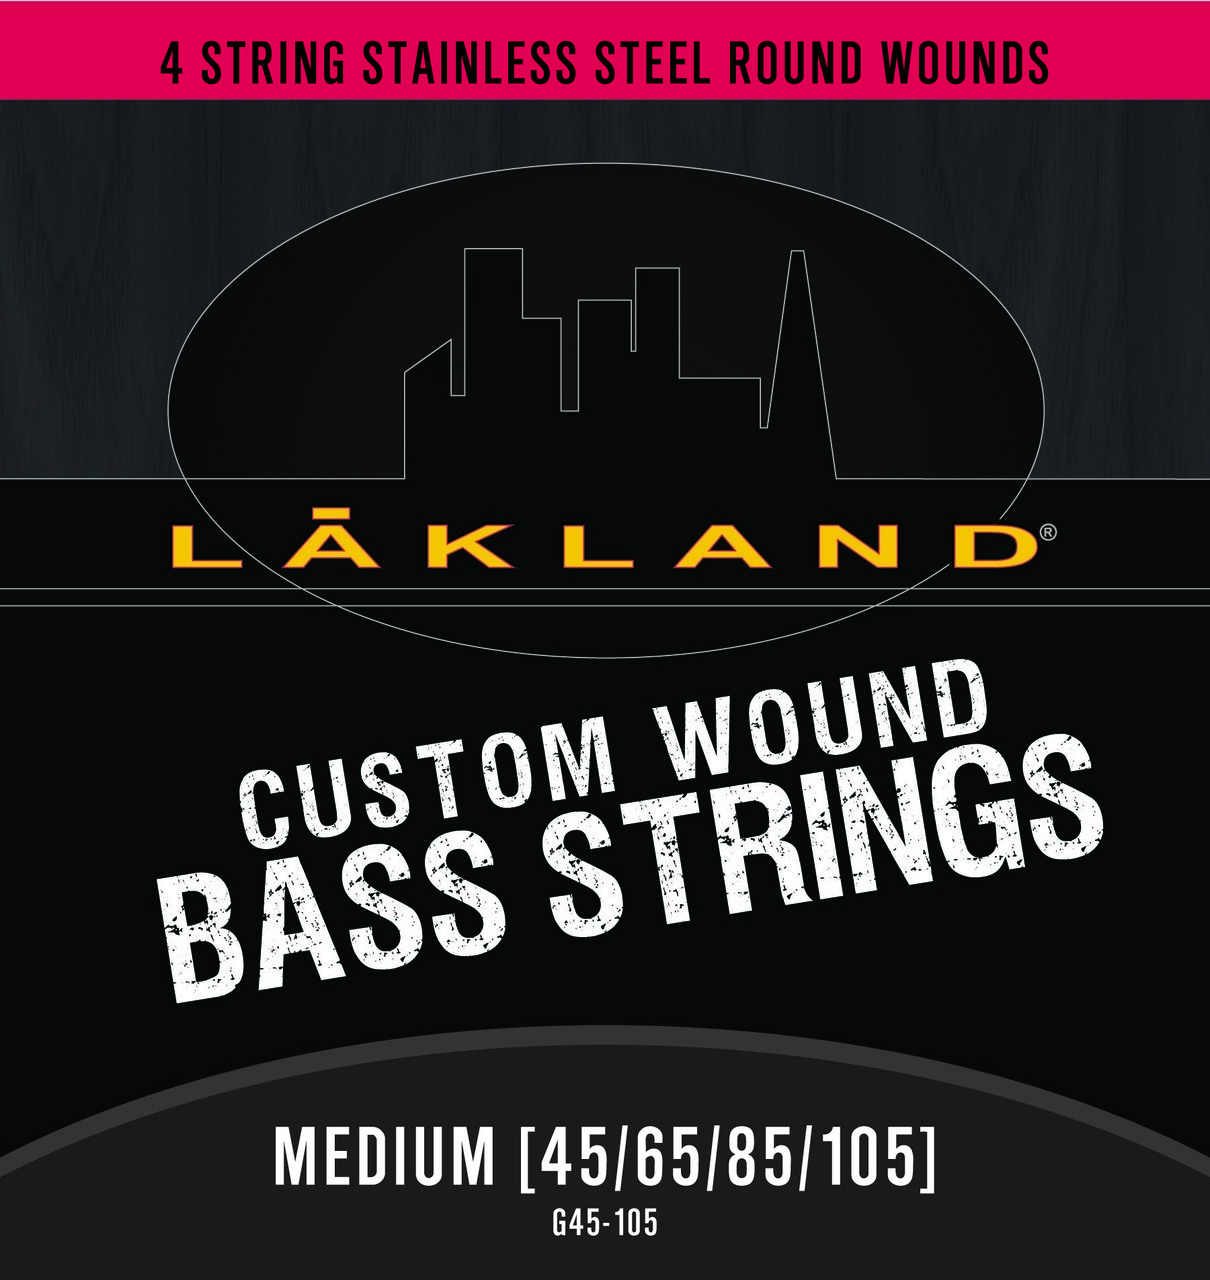 Lakland 4 String Stainless Steel Round Wound Medium Gauge